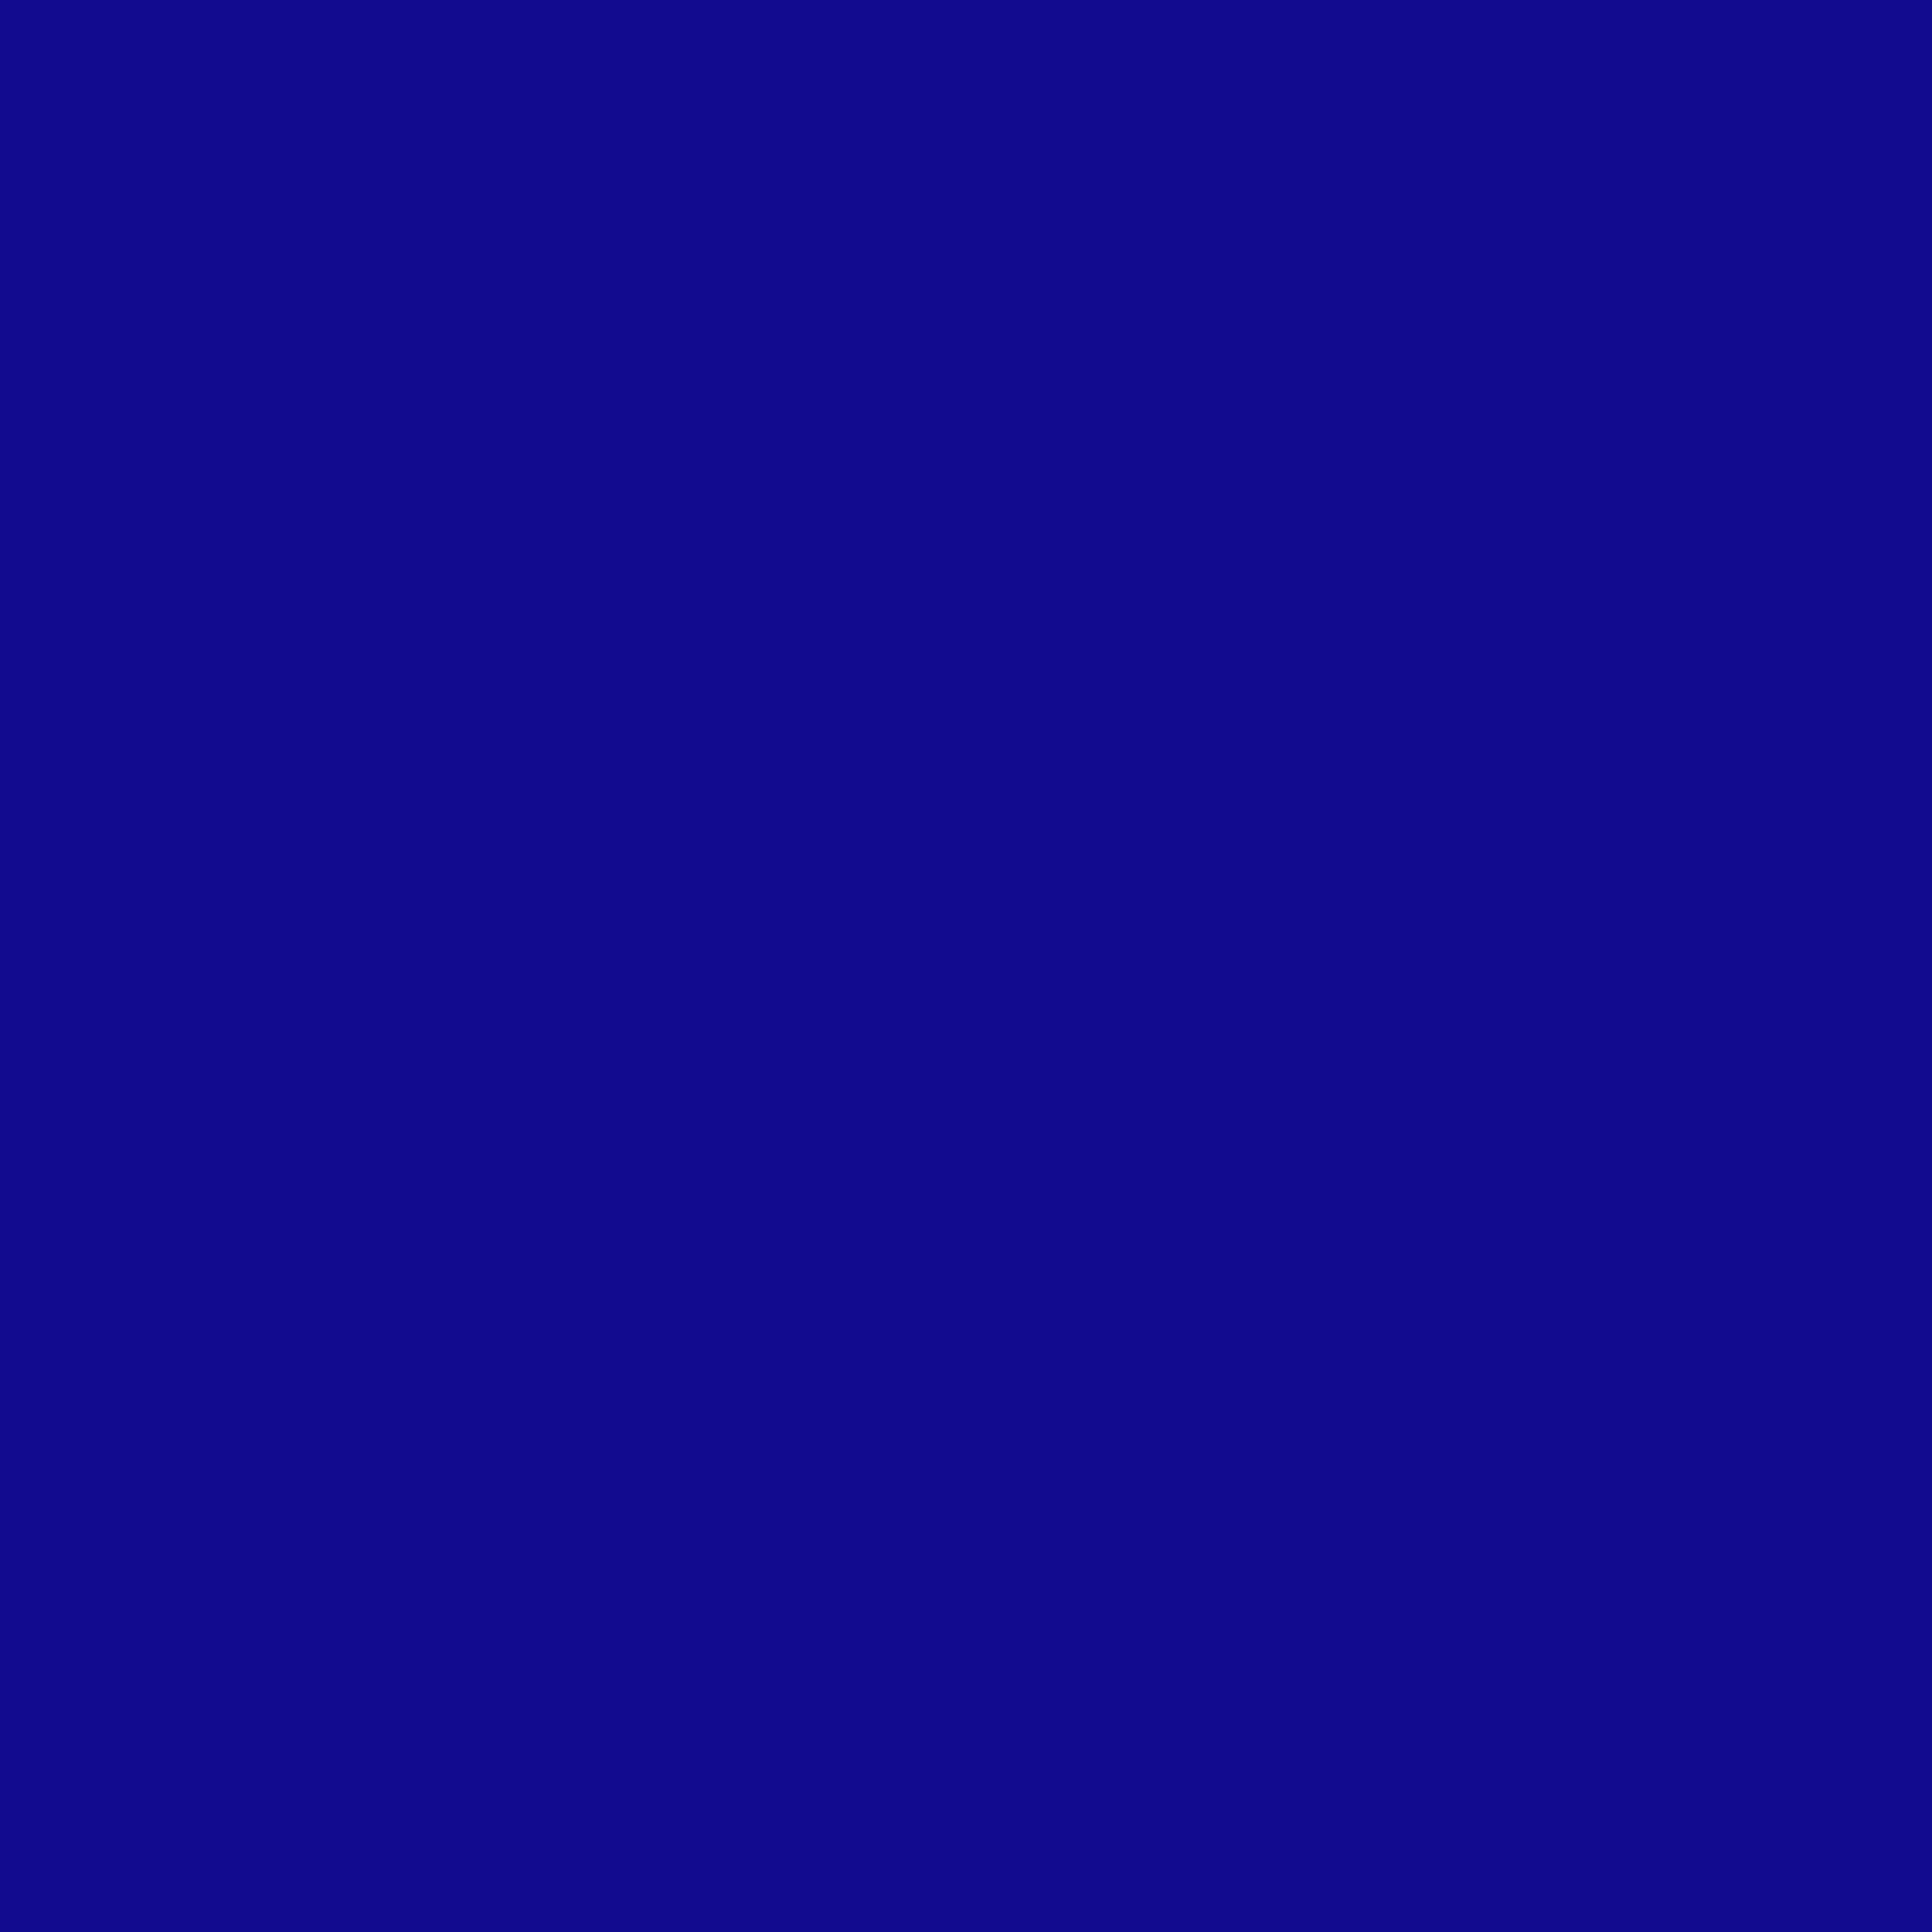 2048x2048 Ultramarine Solid Color Background 2048x2048